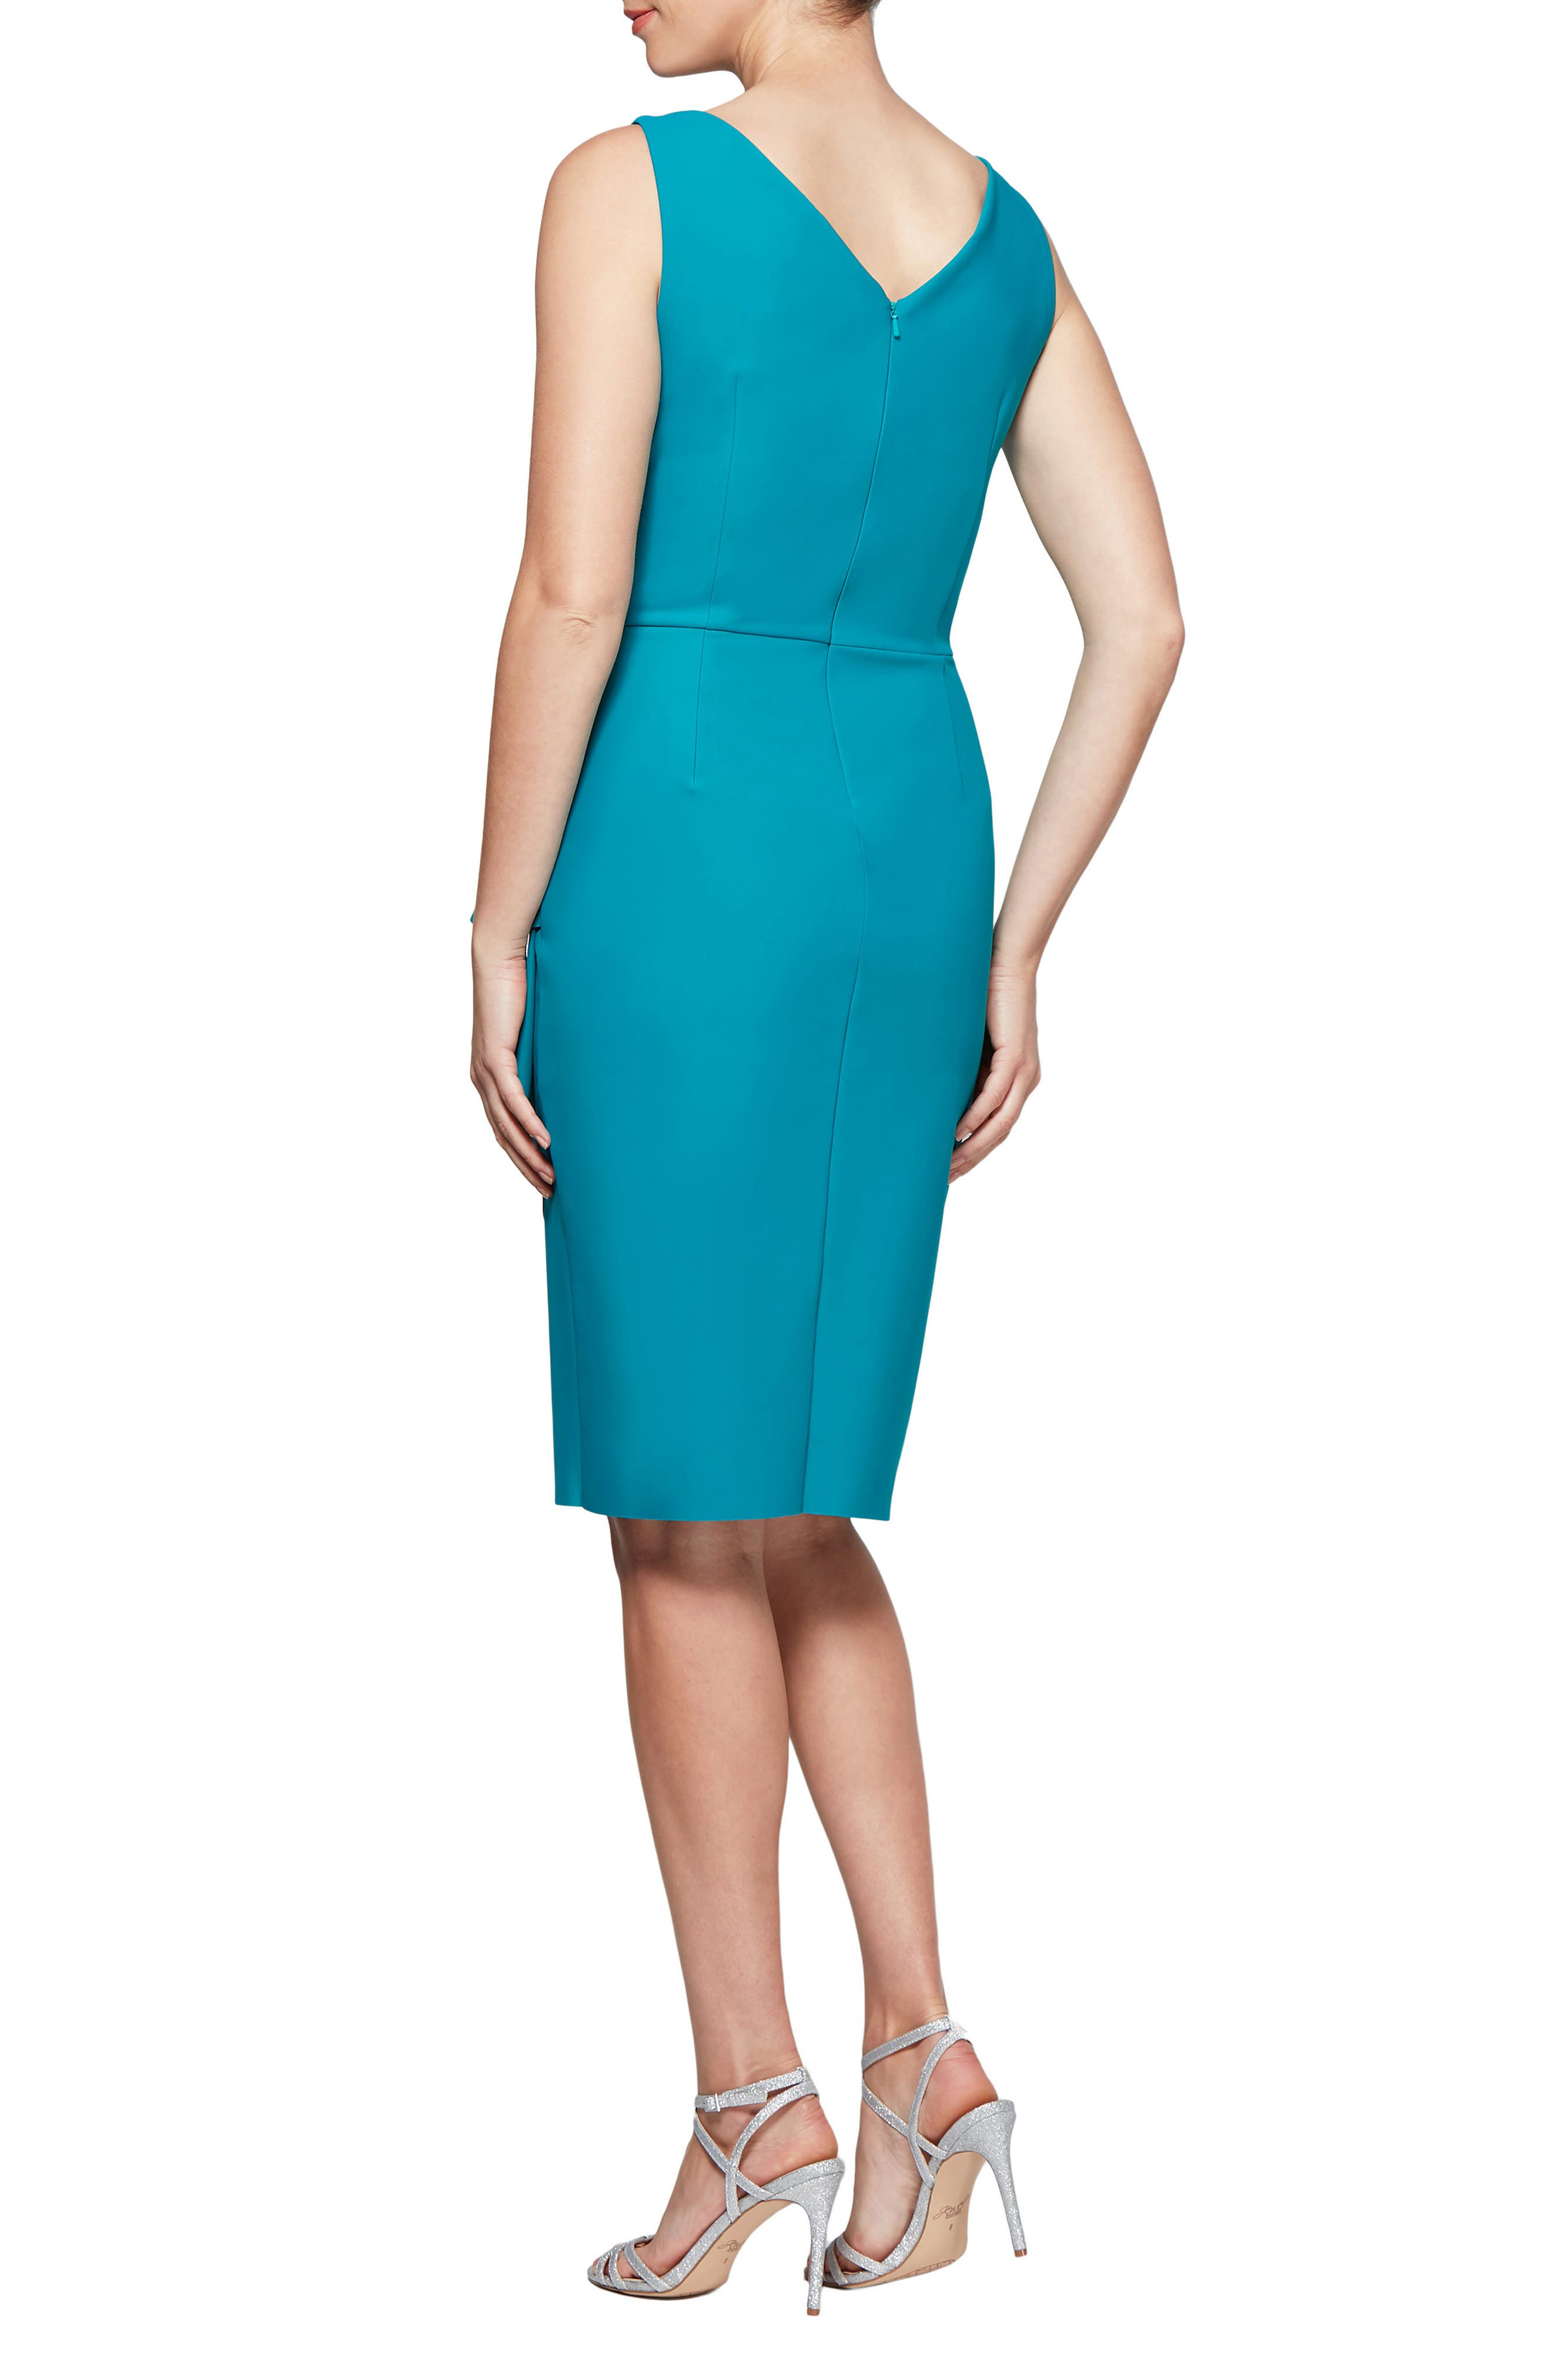 ALEX EVENINGS, Side Ruched Dress, Alternate thumbnail 2, color, TURQUOISE